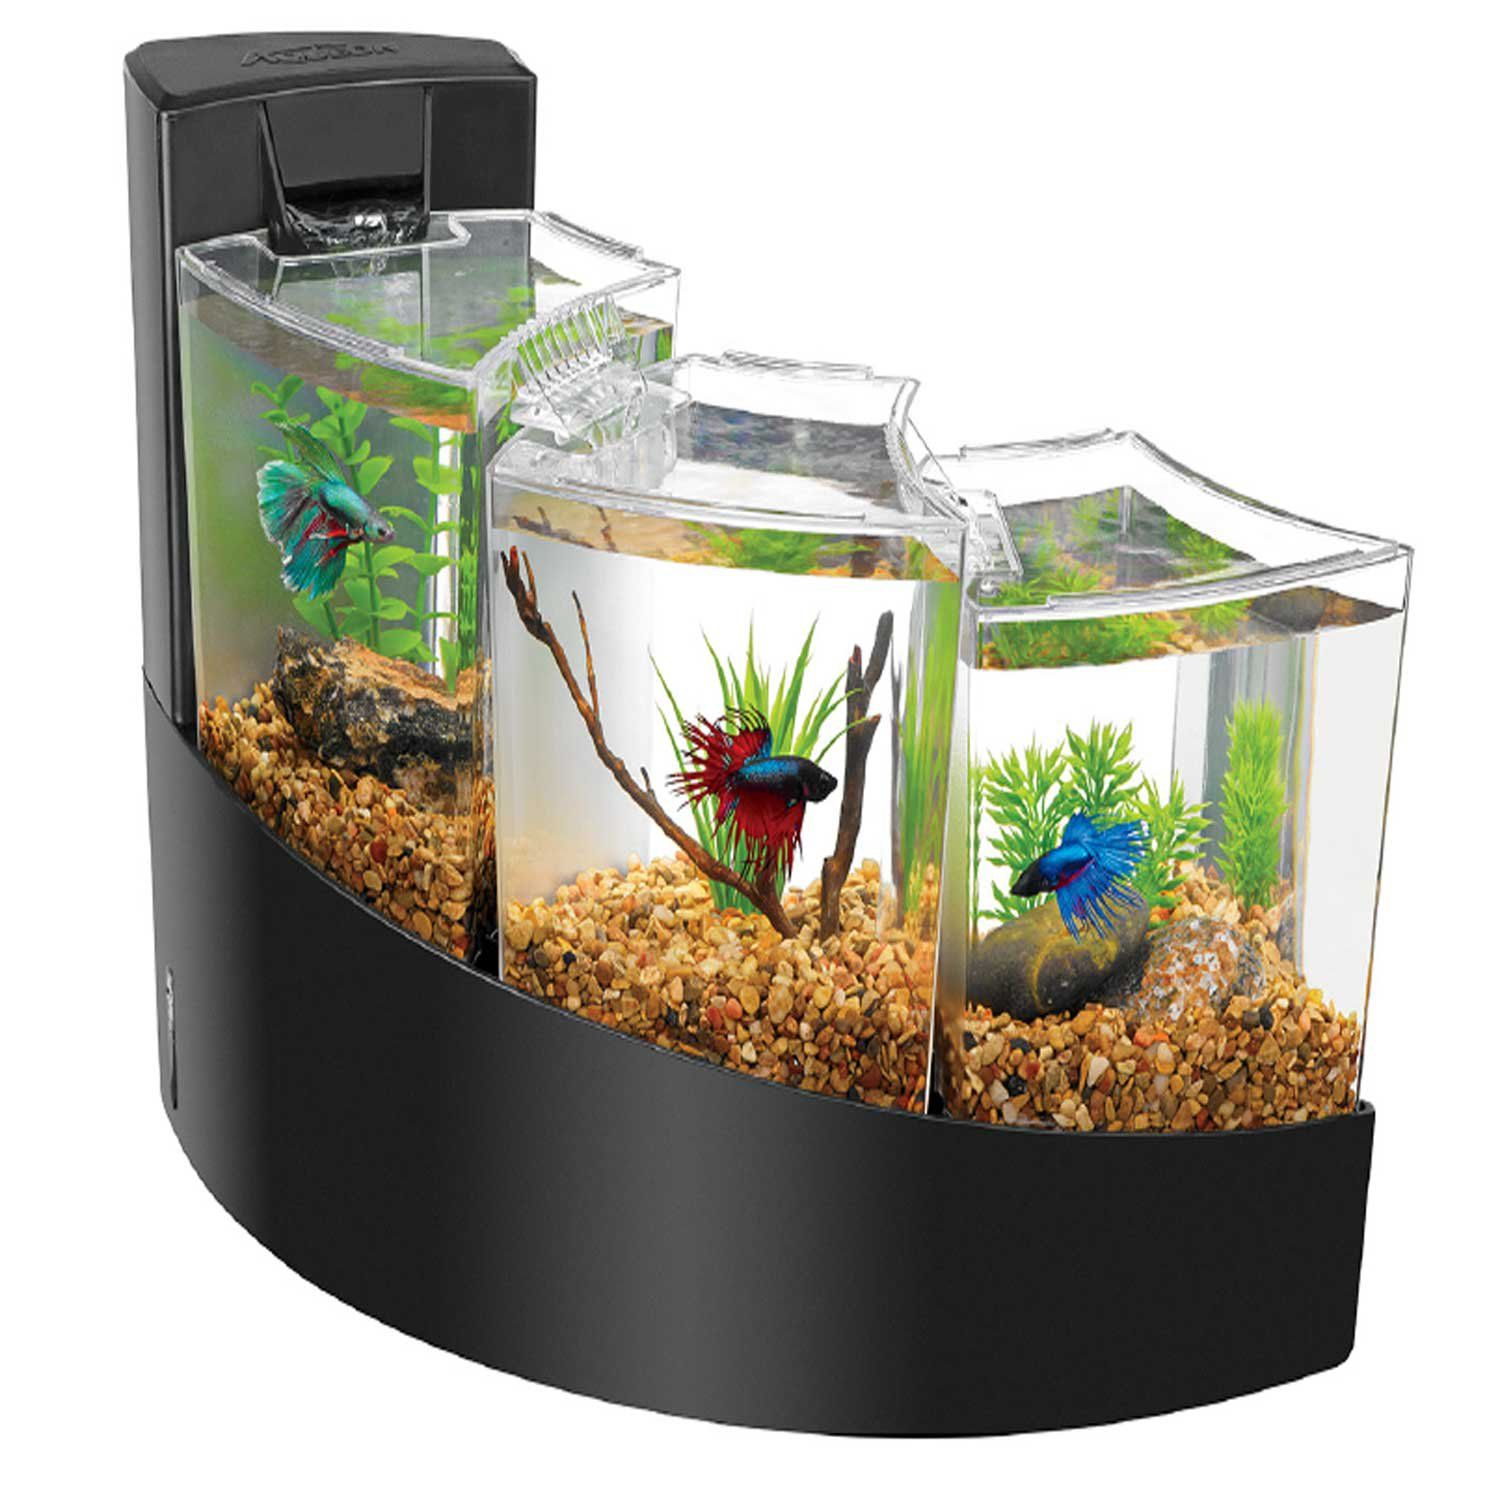 aqueon betta falls aquarium kit in black aqueon betta falls fish aquarium kit is a waterfall. Black Bedroom Furniture Sets. Home Design Ideas